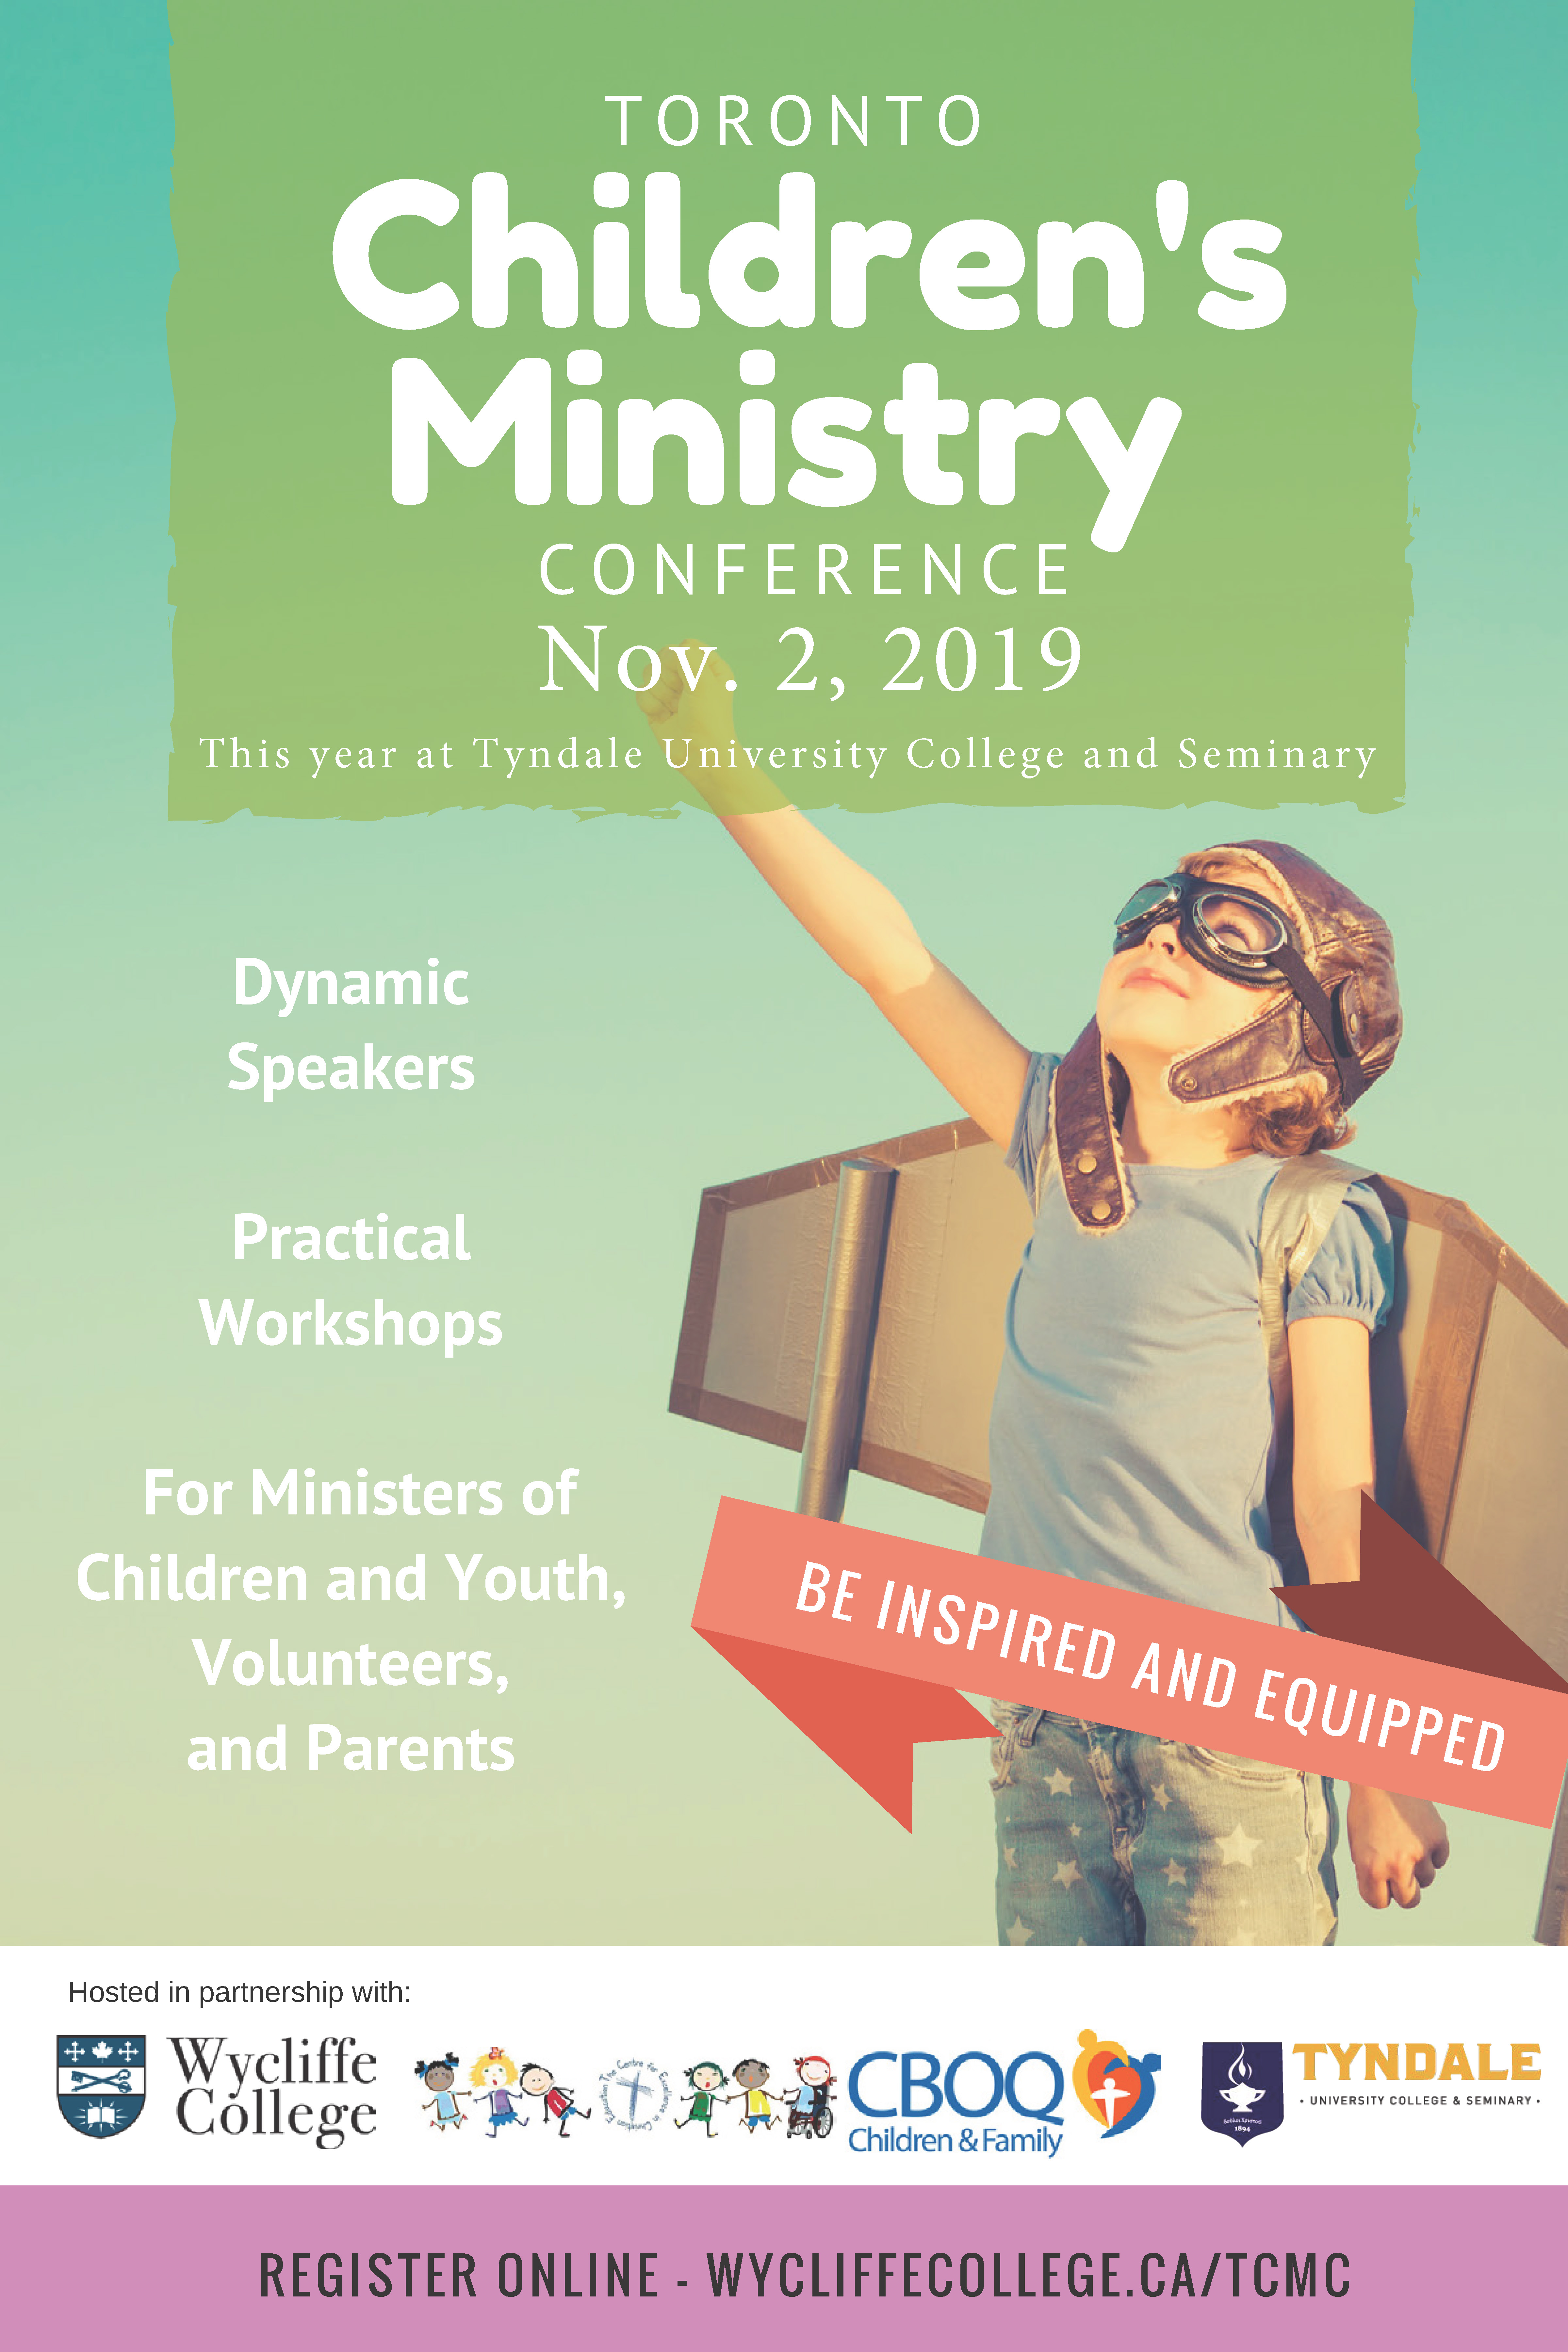 Toronto Children's Ministry Conference 2019